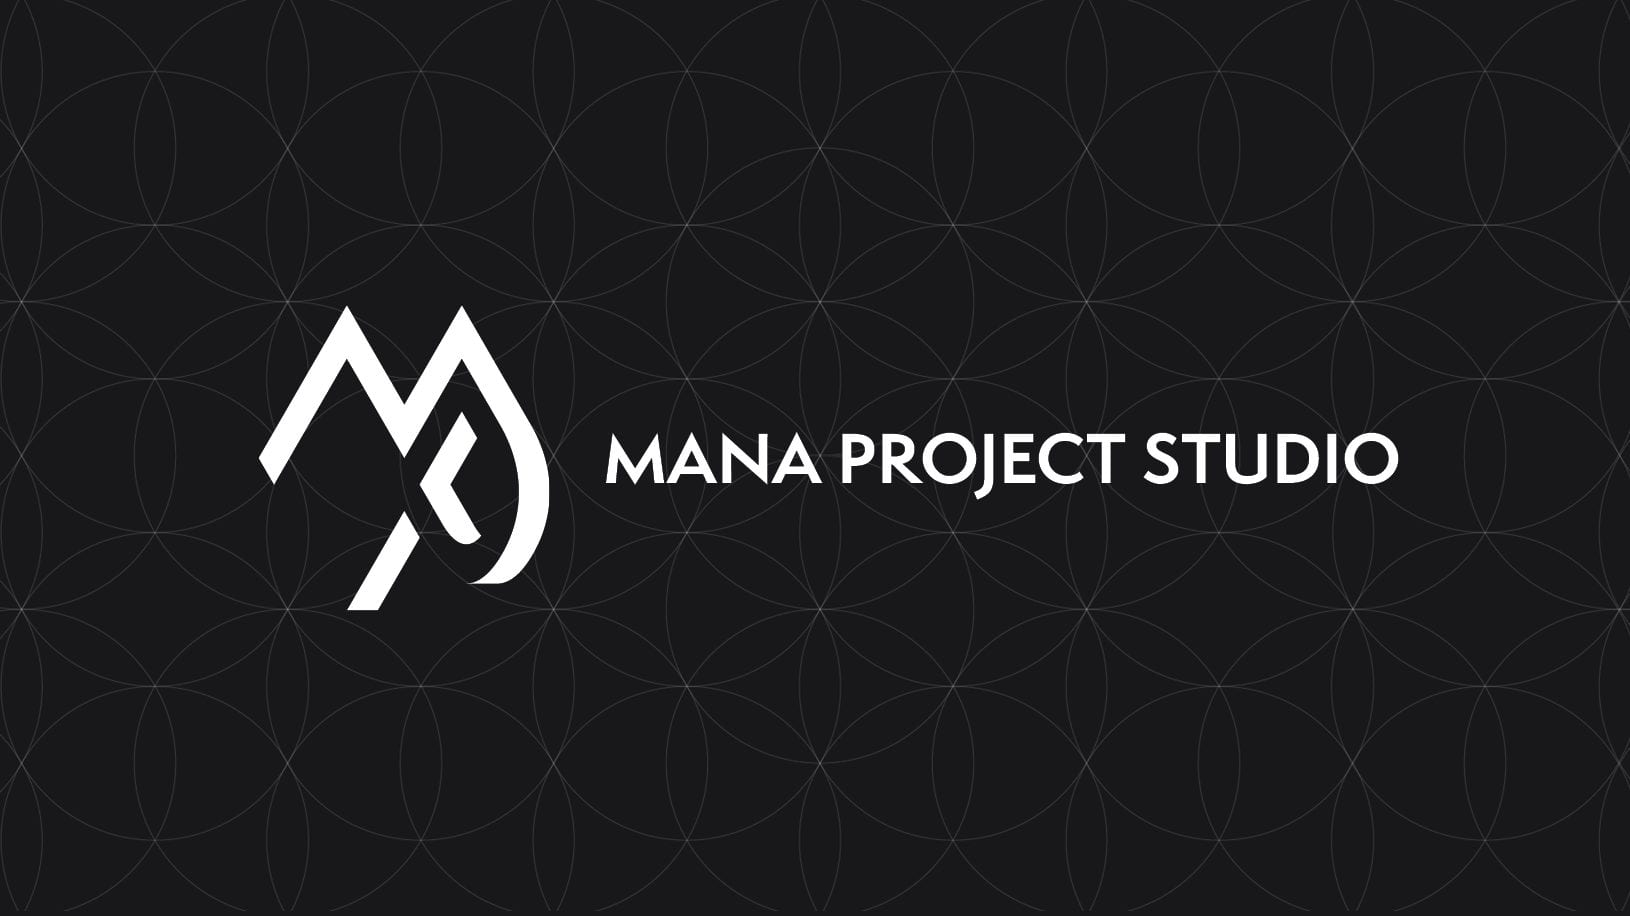 mana-project-studio-spectrum